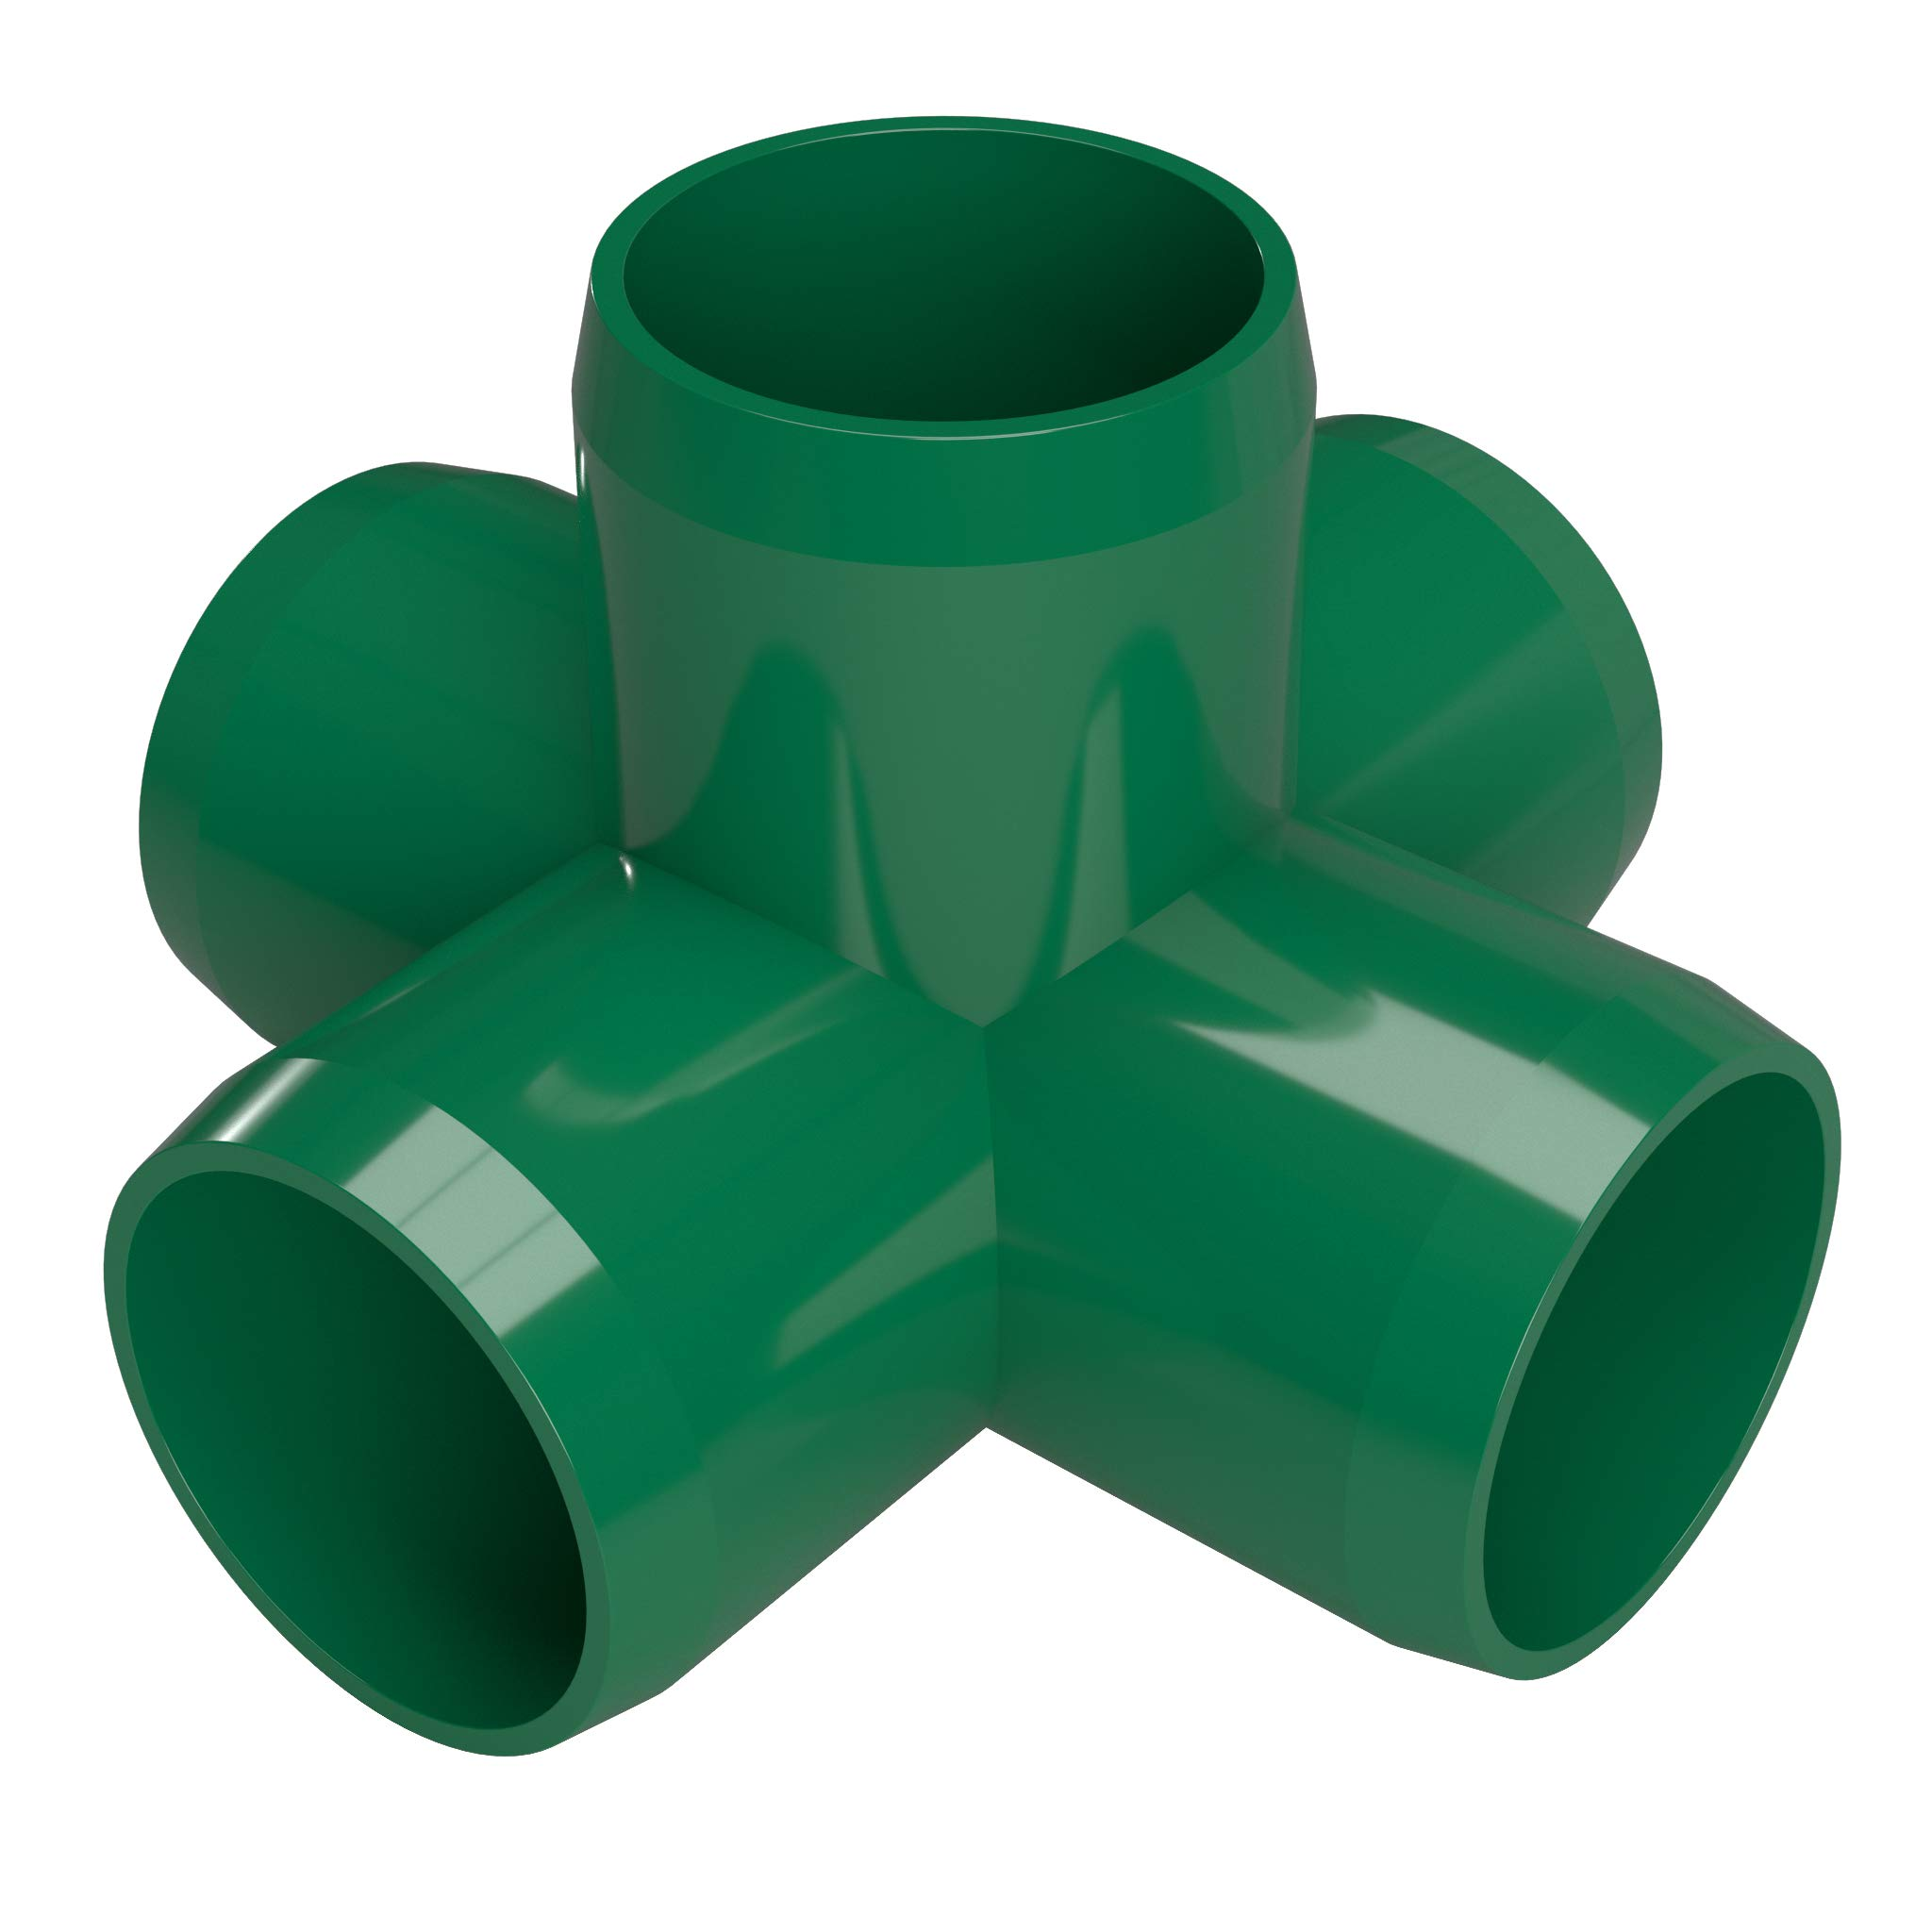 FORMUFIT F1145WC-GR-4 5-Way Cross PVC Fitting, Furniture Grade, 1-1/4'' Size, Green (Pack of 4)